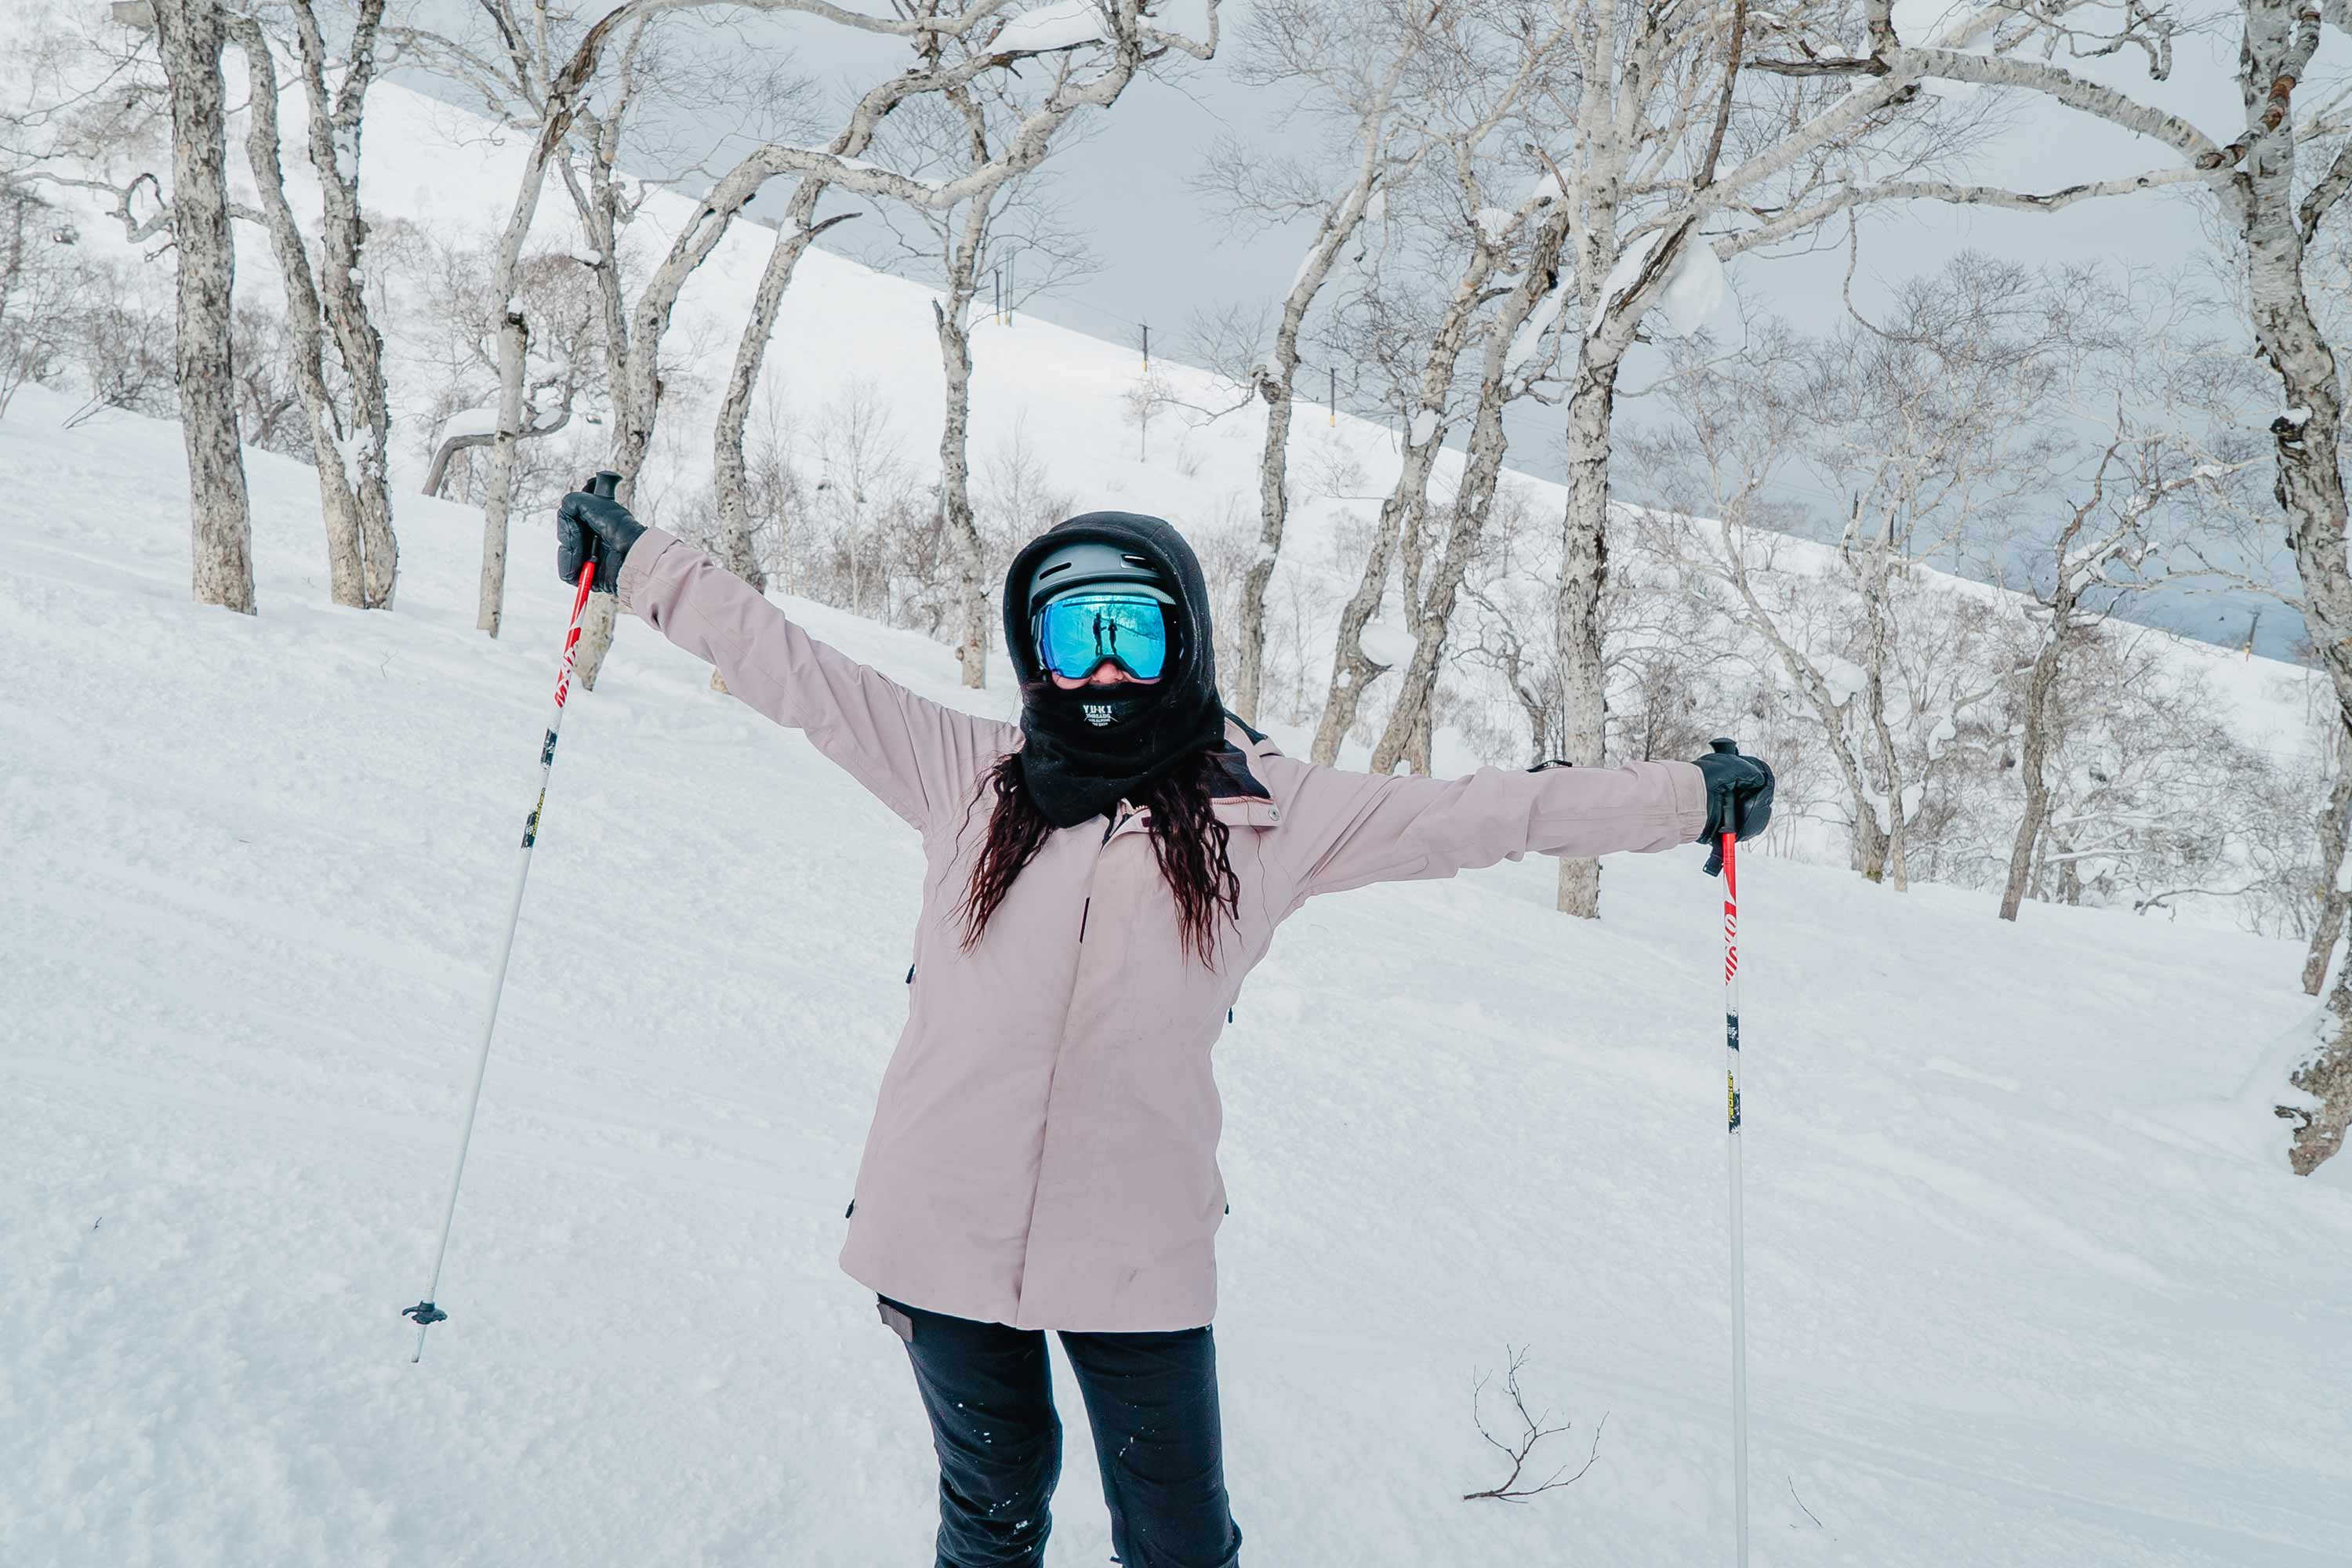 Ski Group Ladies Tour to Nozawa Onsen Japan hosted by Ballistics